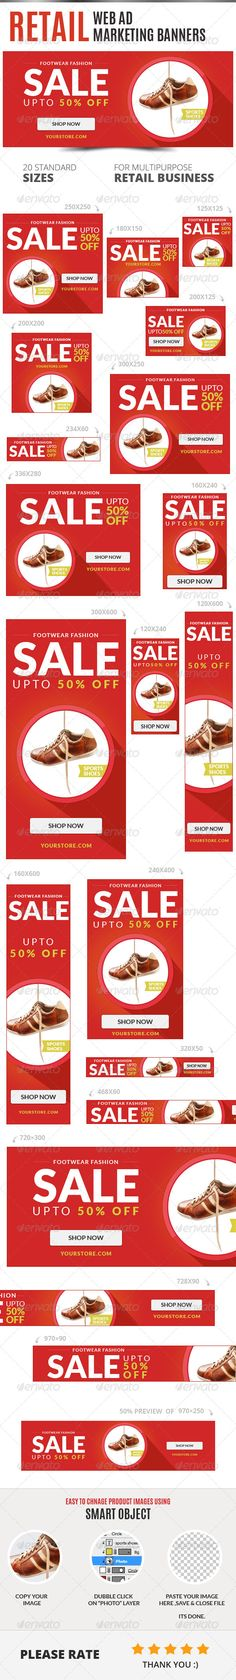 A set of Retail Web Ad Marketing Banners is comes with 20 standard dimensions which also meet Google adwords banners sizes. It included all the layered psd file where you can easily change its text, color & shapes as per your requirements.